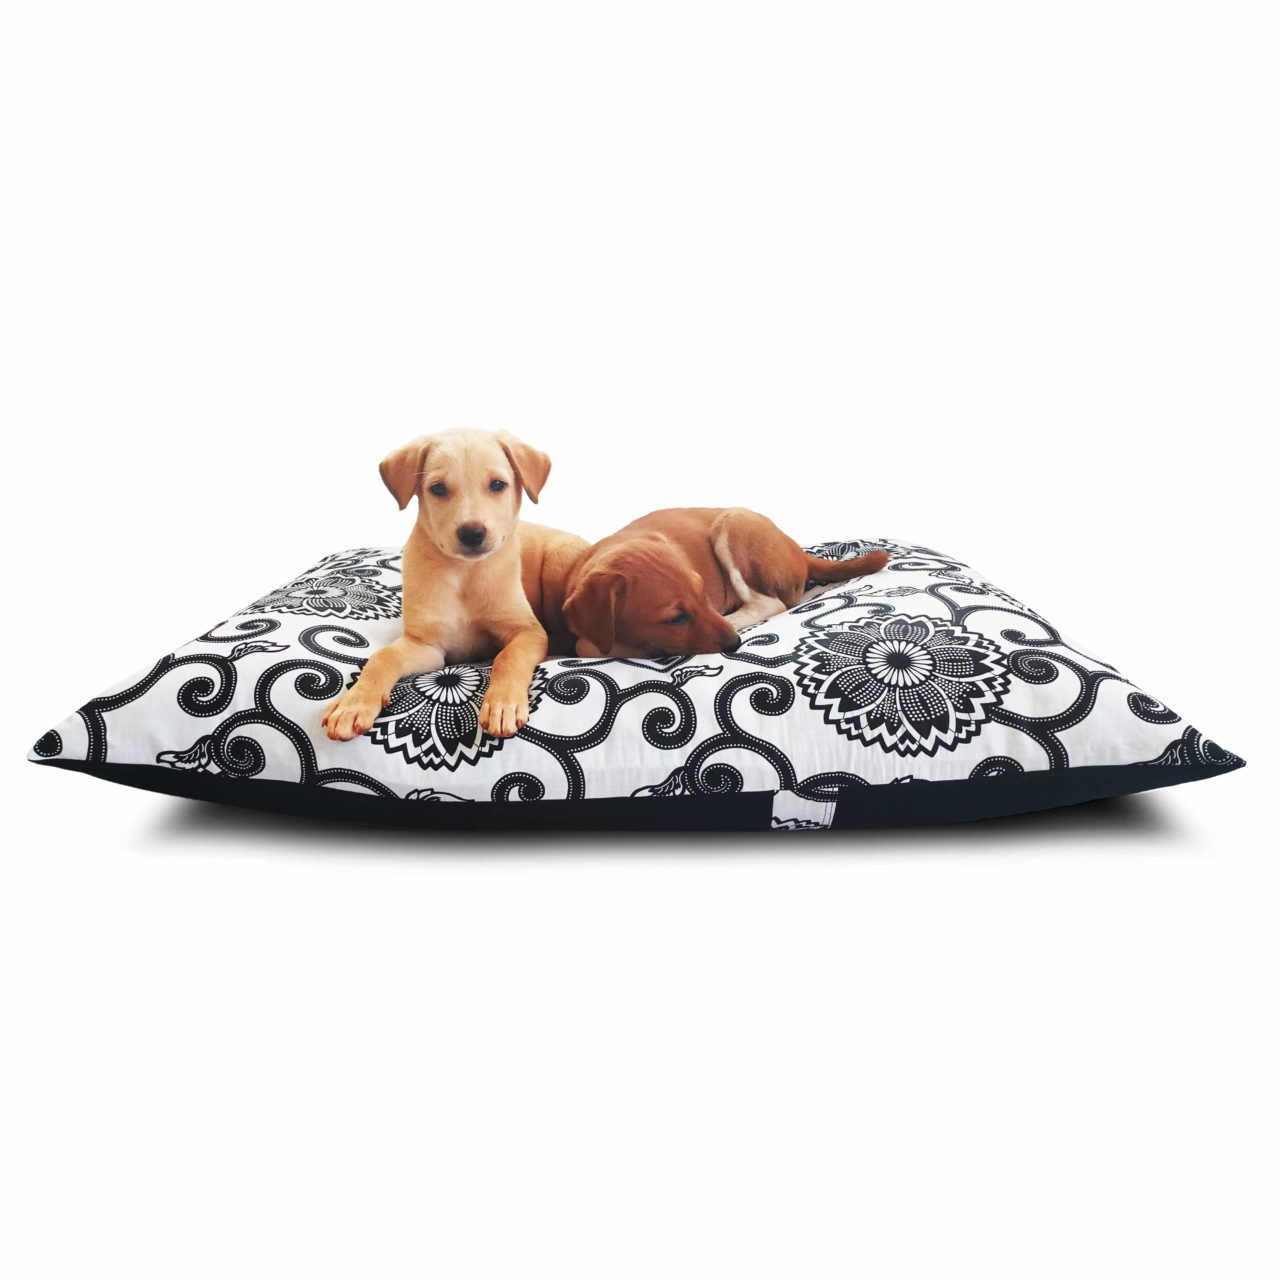 Waterproof Dog Bed Black & White Floral Print | Luxury Dog Beds|Prazuchi